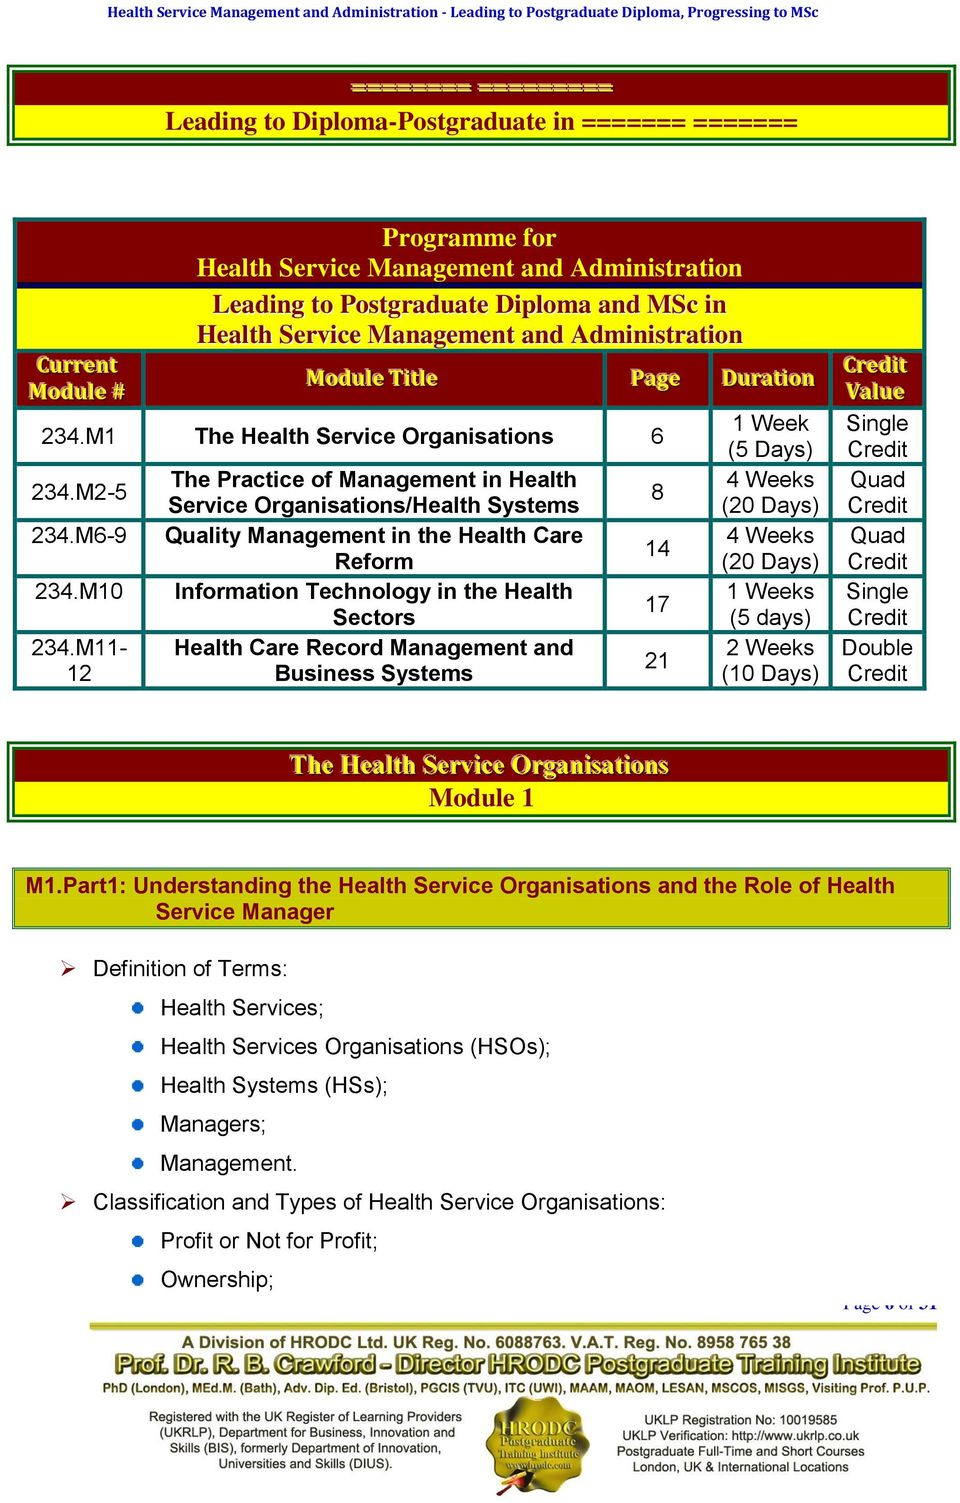 M6-9 Quality Management in the Health Care Reform 234.M10 Information Technology in the Health Sectors 234.